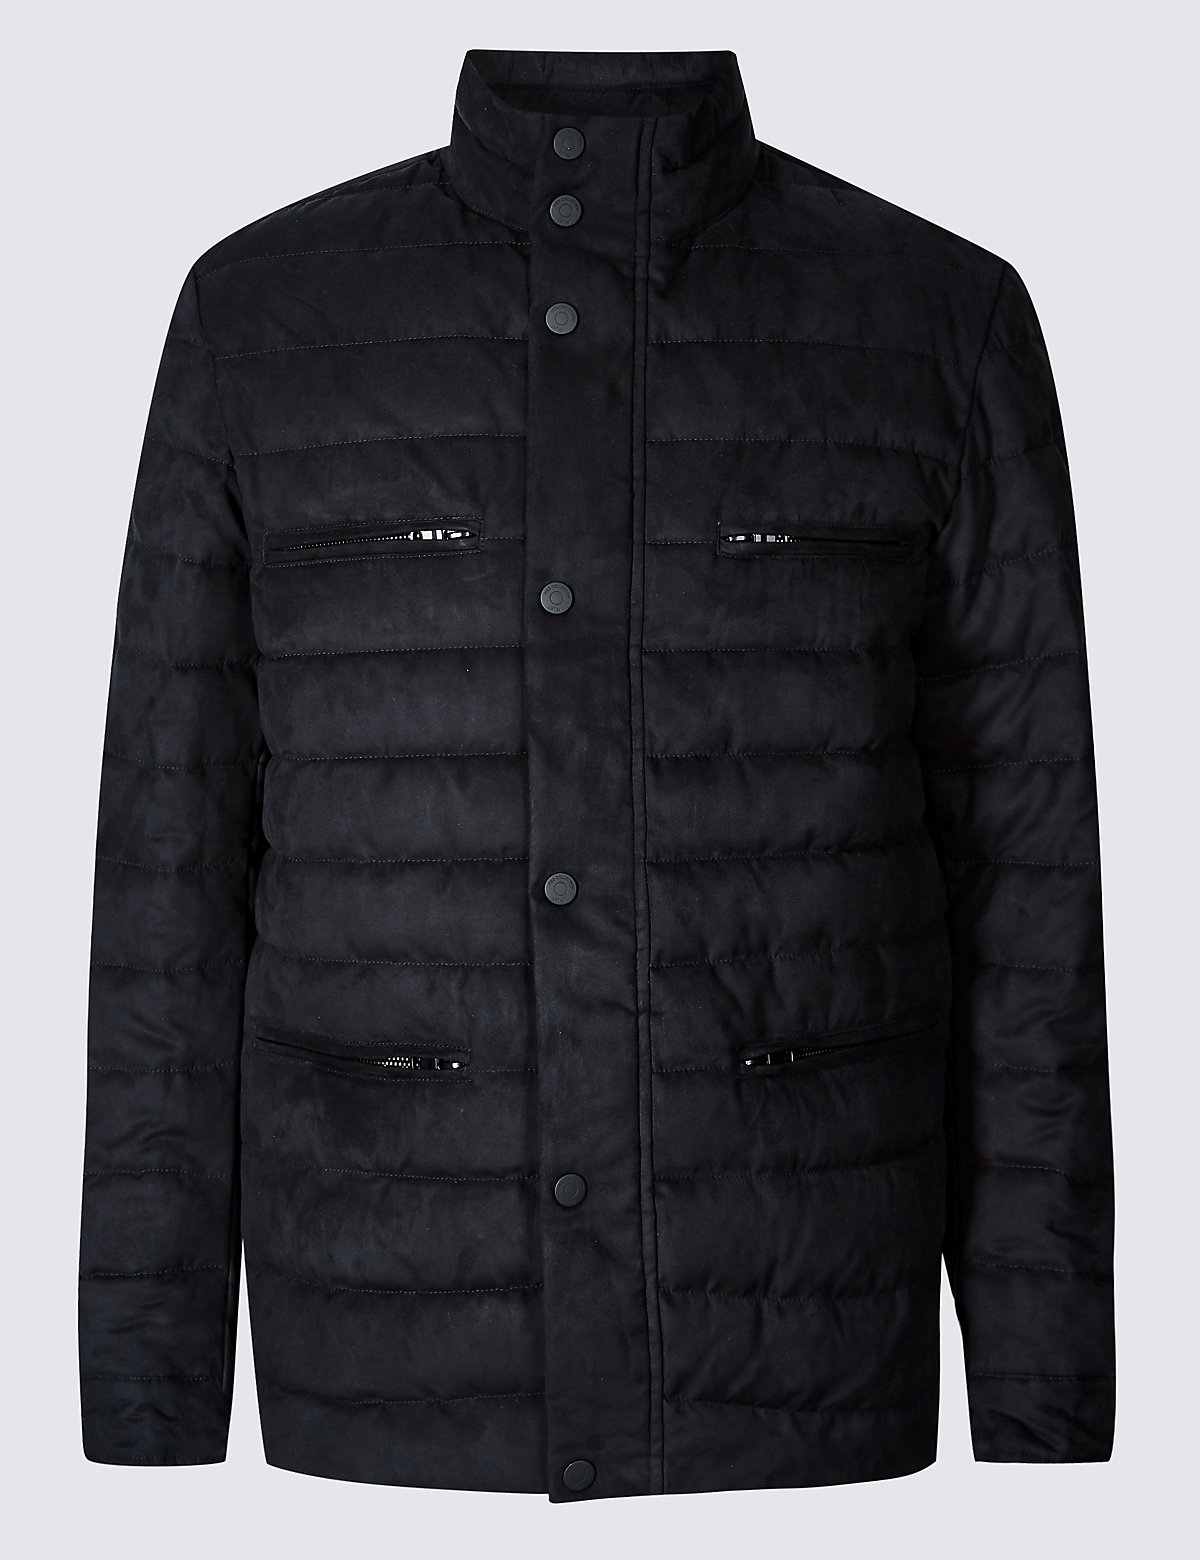 Marks & Spencer Navy Quilted Jacket with Stormwear™